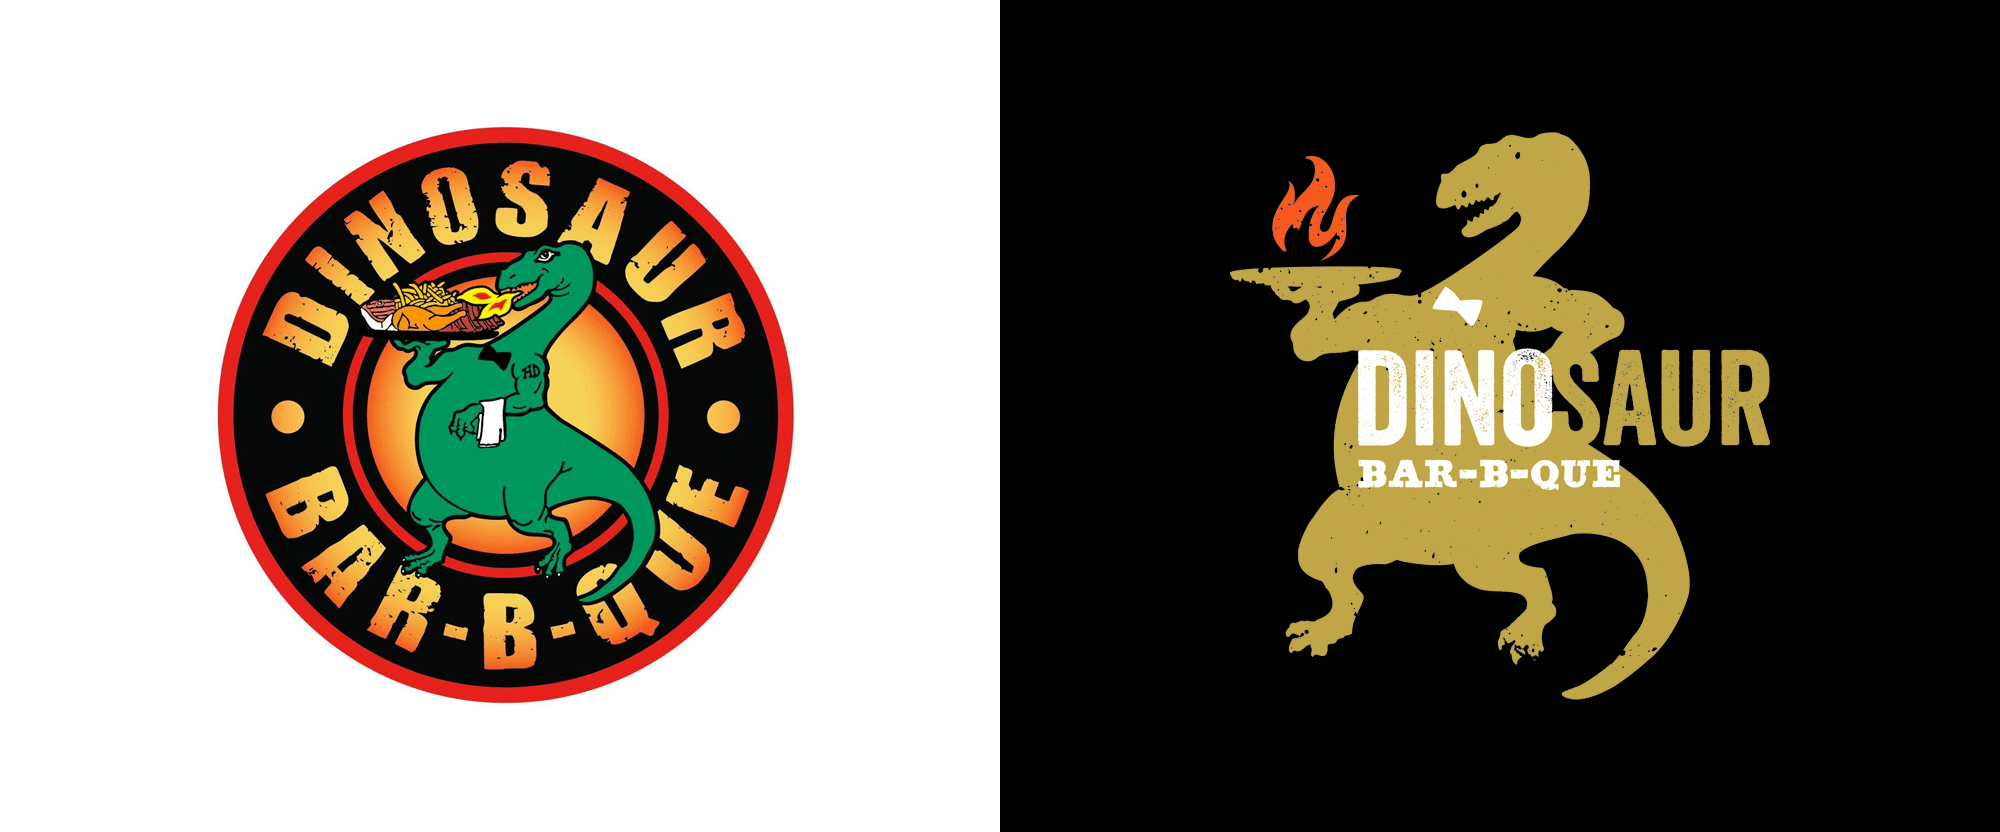 New Logo for Dionsaur Bar-B-Que by CINSYR